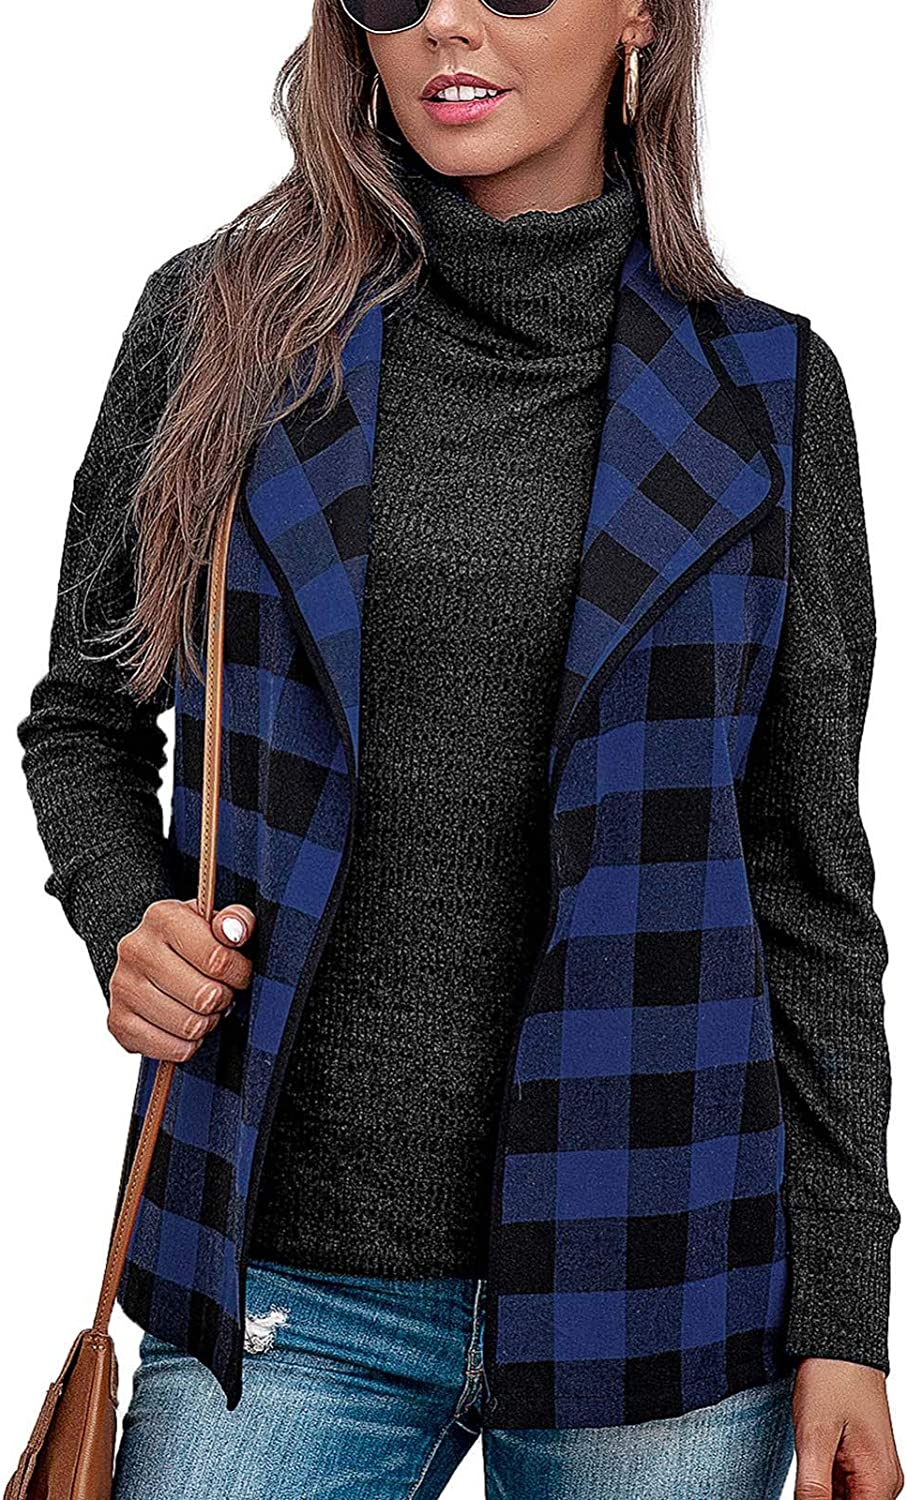 WUAI-Women Plaid Vests Lapel Drape Open Max 84% OFF Slee Buffalo Animer and price revision Front